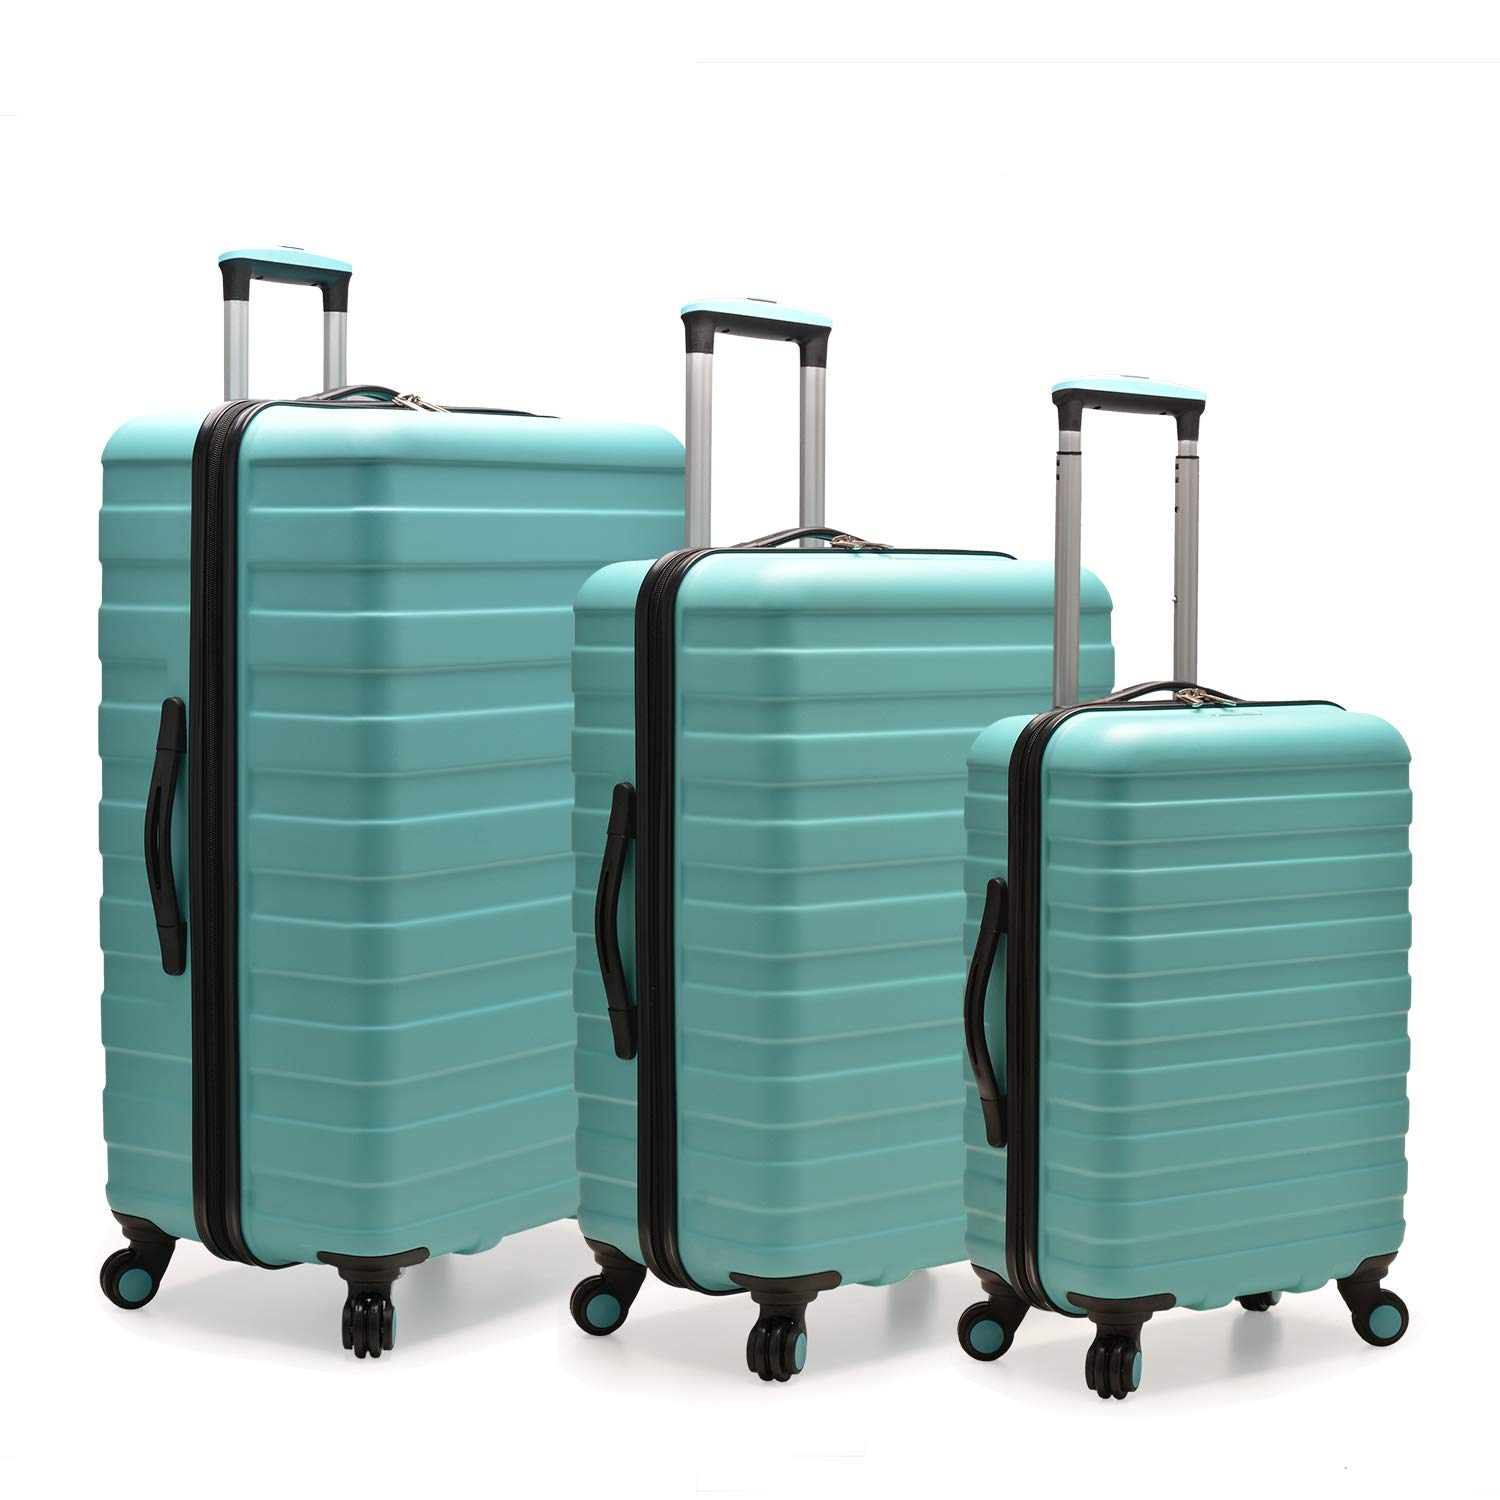 Traveler Cypress Colorful 3-Piece Hardside Spinner Luggage Set Travelers Choice U.S